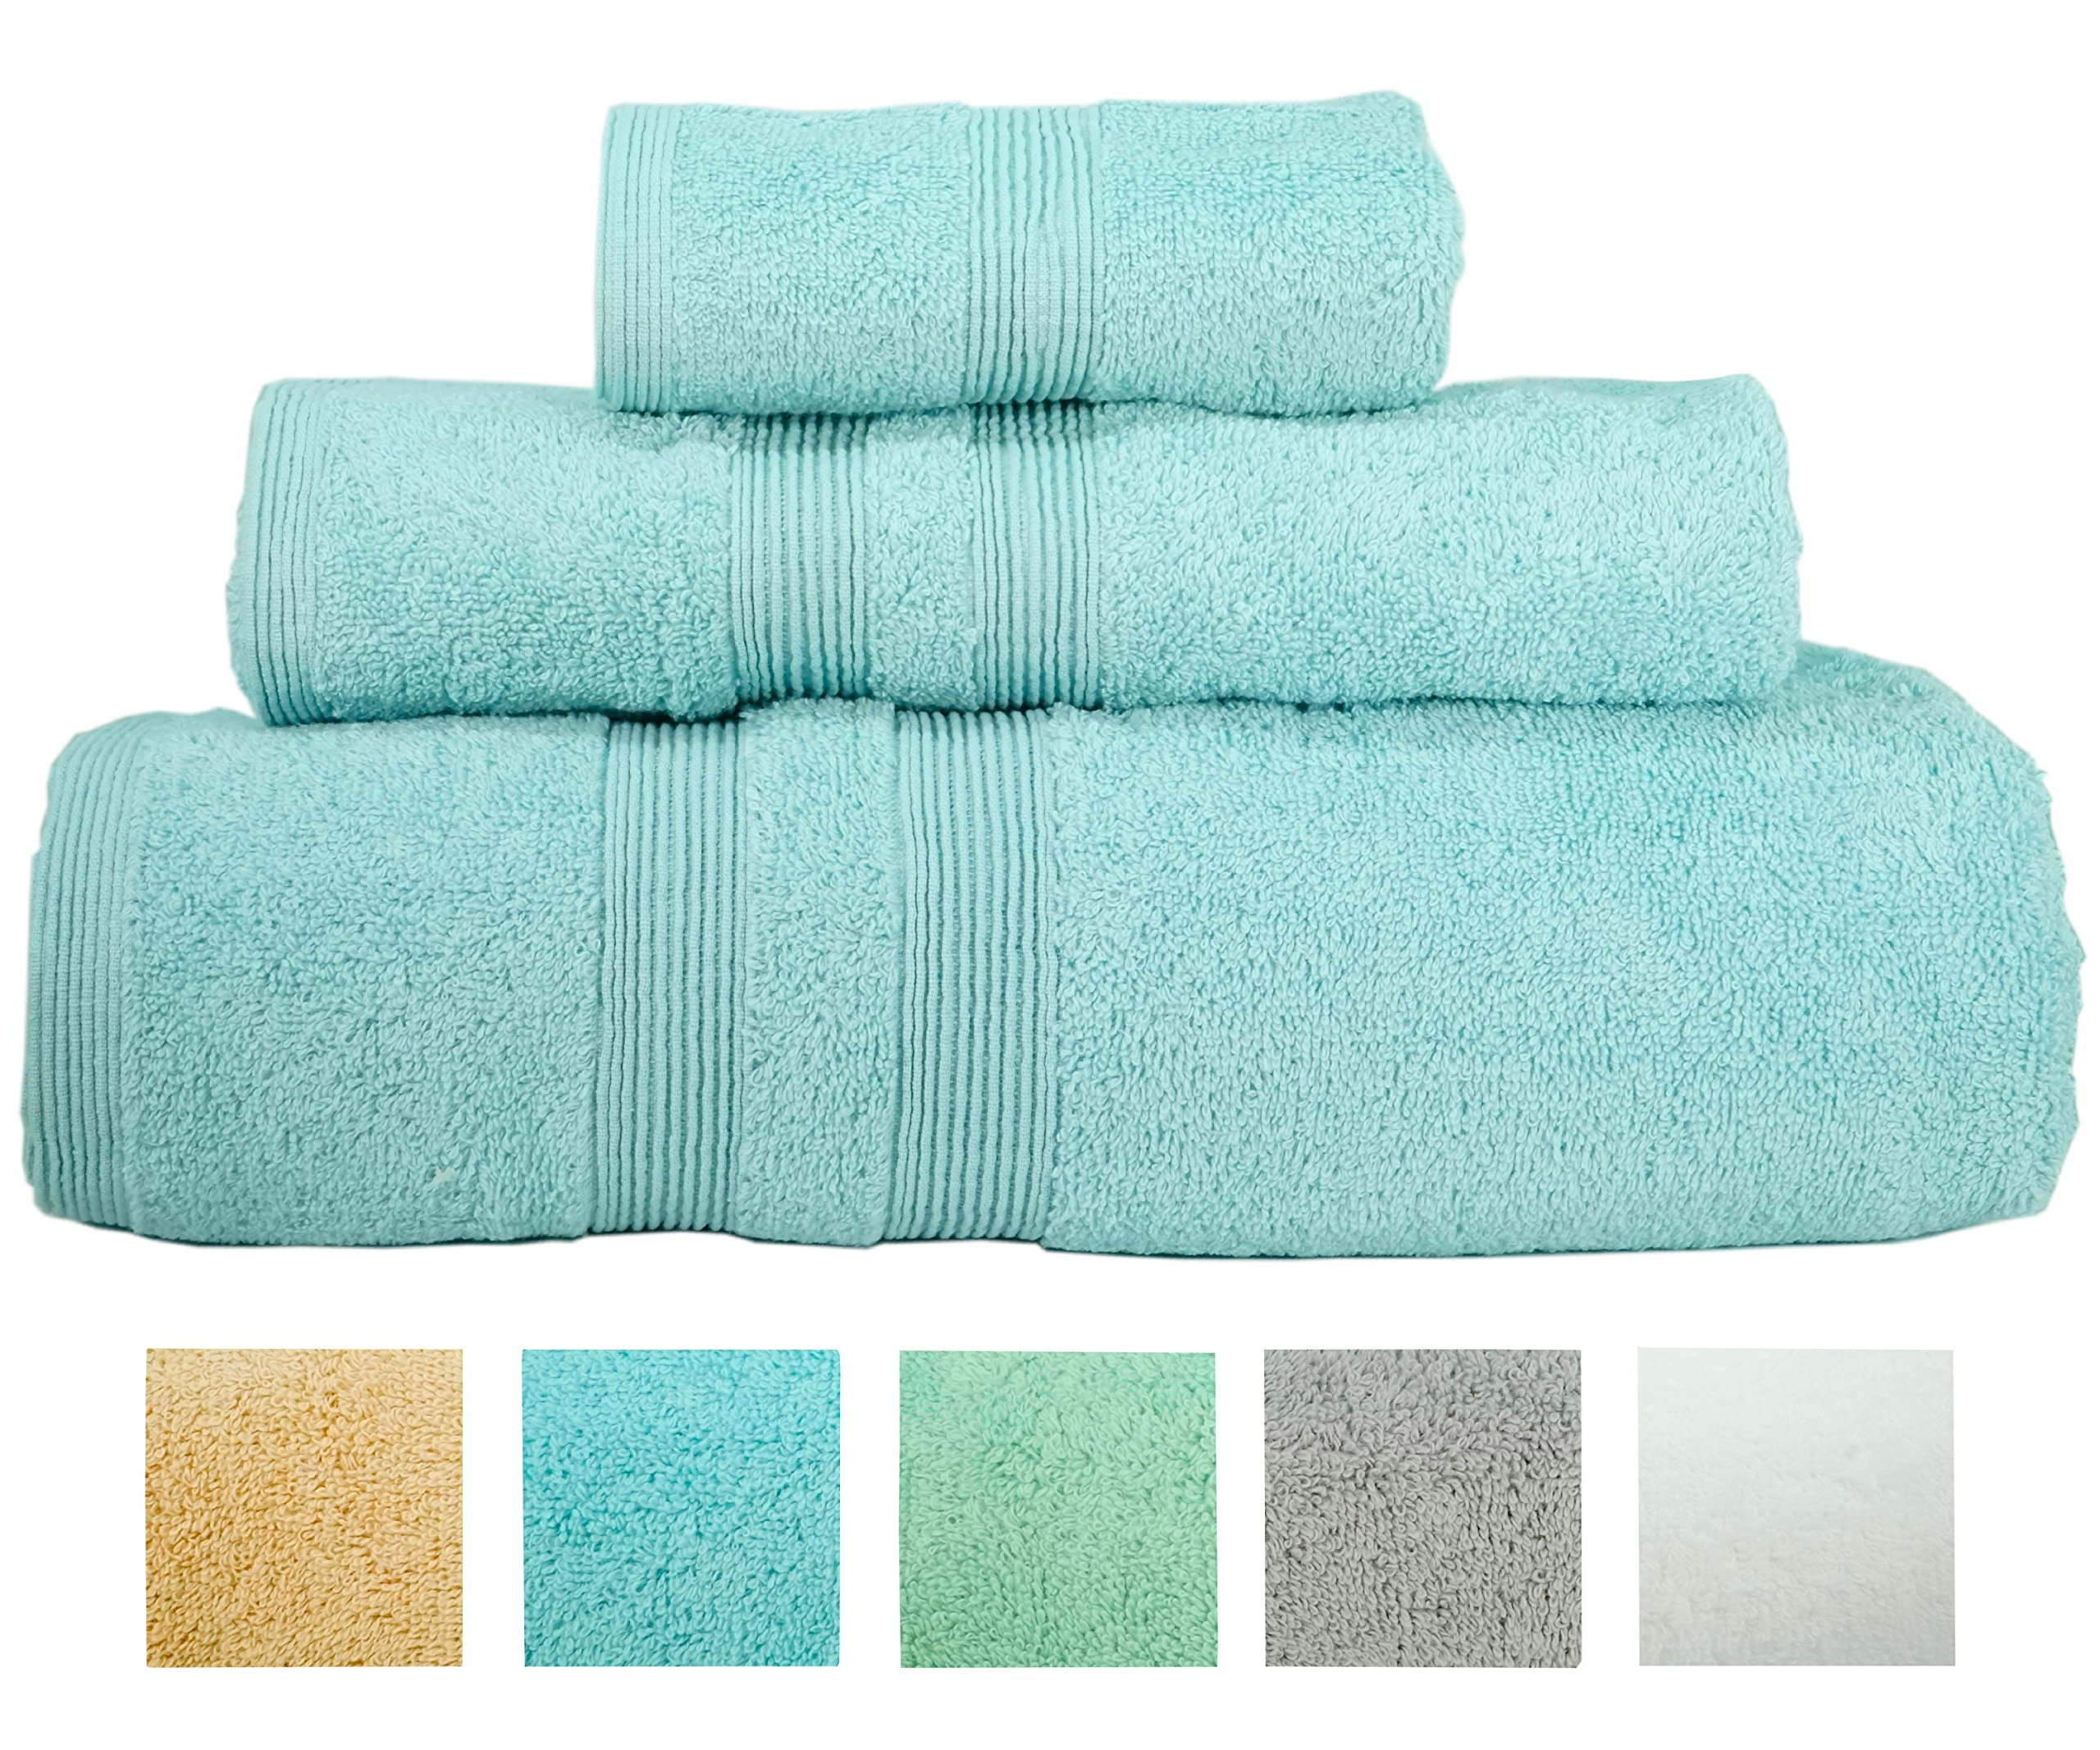 Turkish Bath Towel Set Spa Hotel Premium Loop Terry 100% Natural Cotton Comfortable Super Soft Christmas Gifts Luxury (3 Towels) (Sterling Blue)